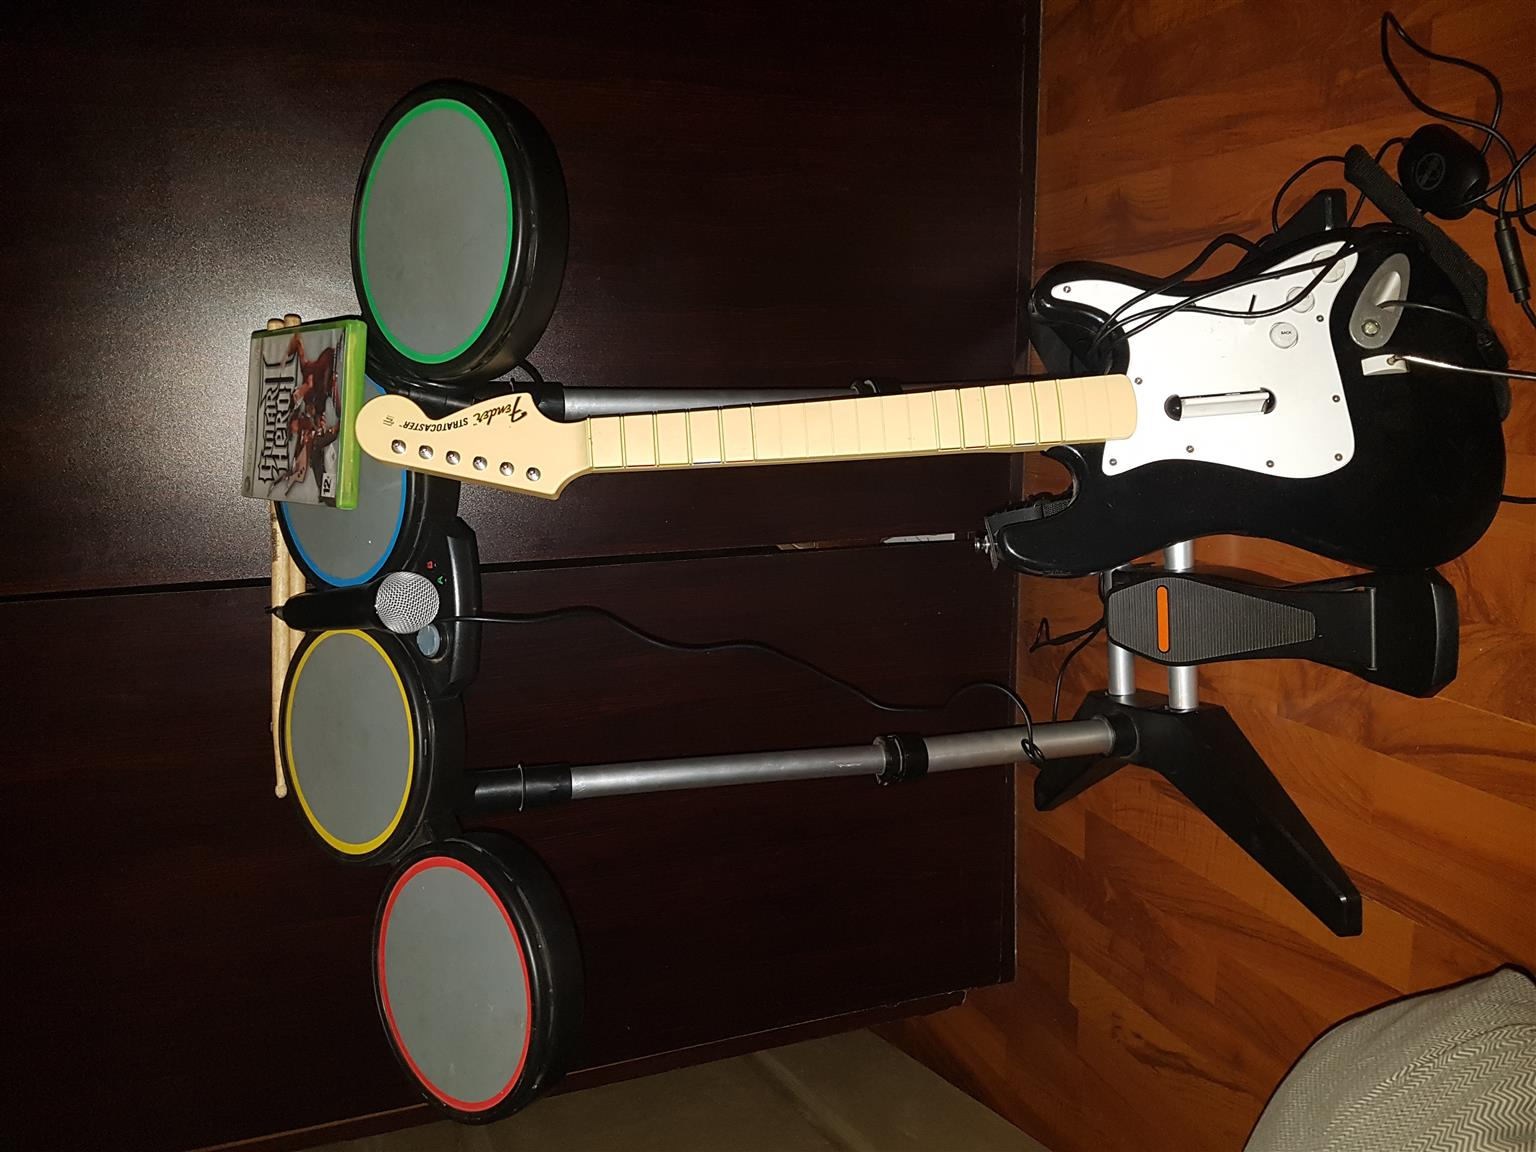 guitar hero set with drums and microphone junk mail. Black Bedroom Furniture Sets. Home Design Ideas